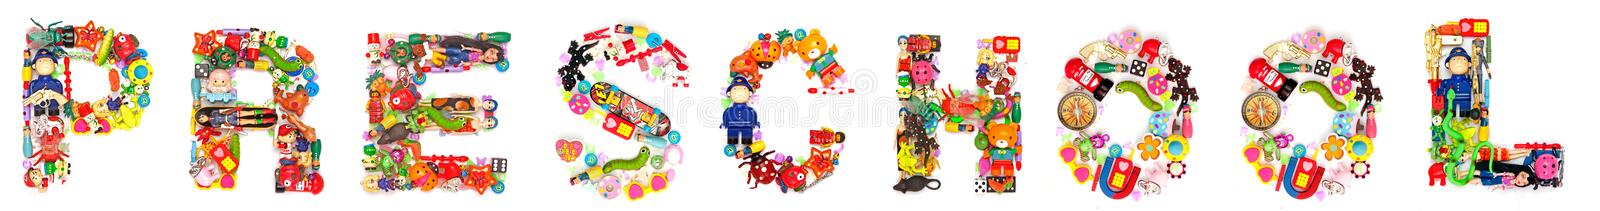 Preschool made up toys. The word preschool made with lots of sall toys royalty free stock photos